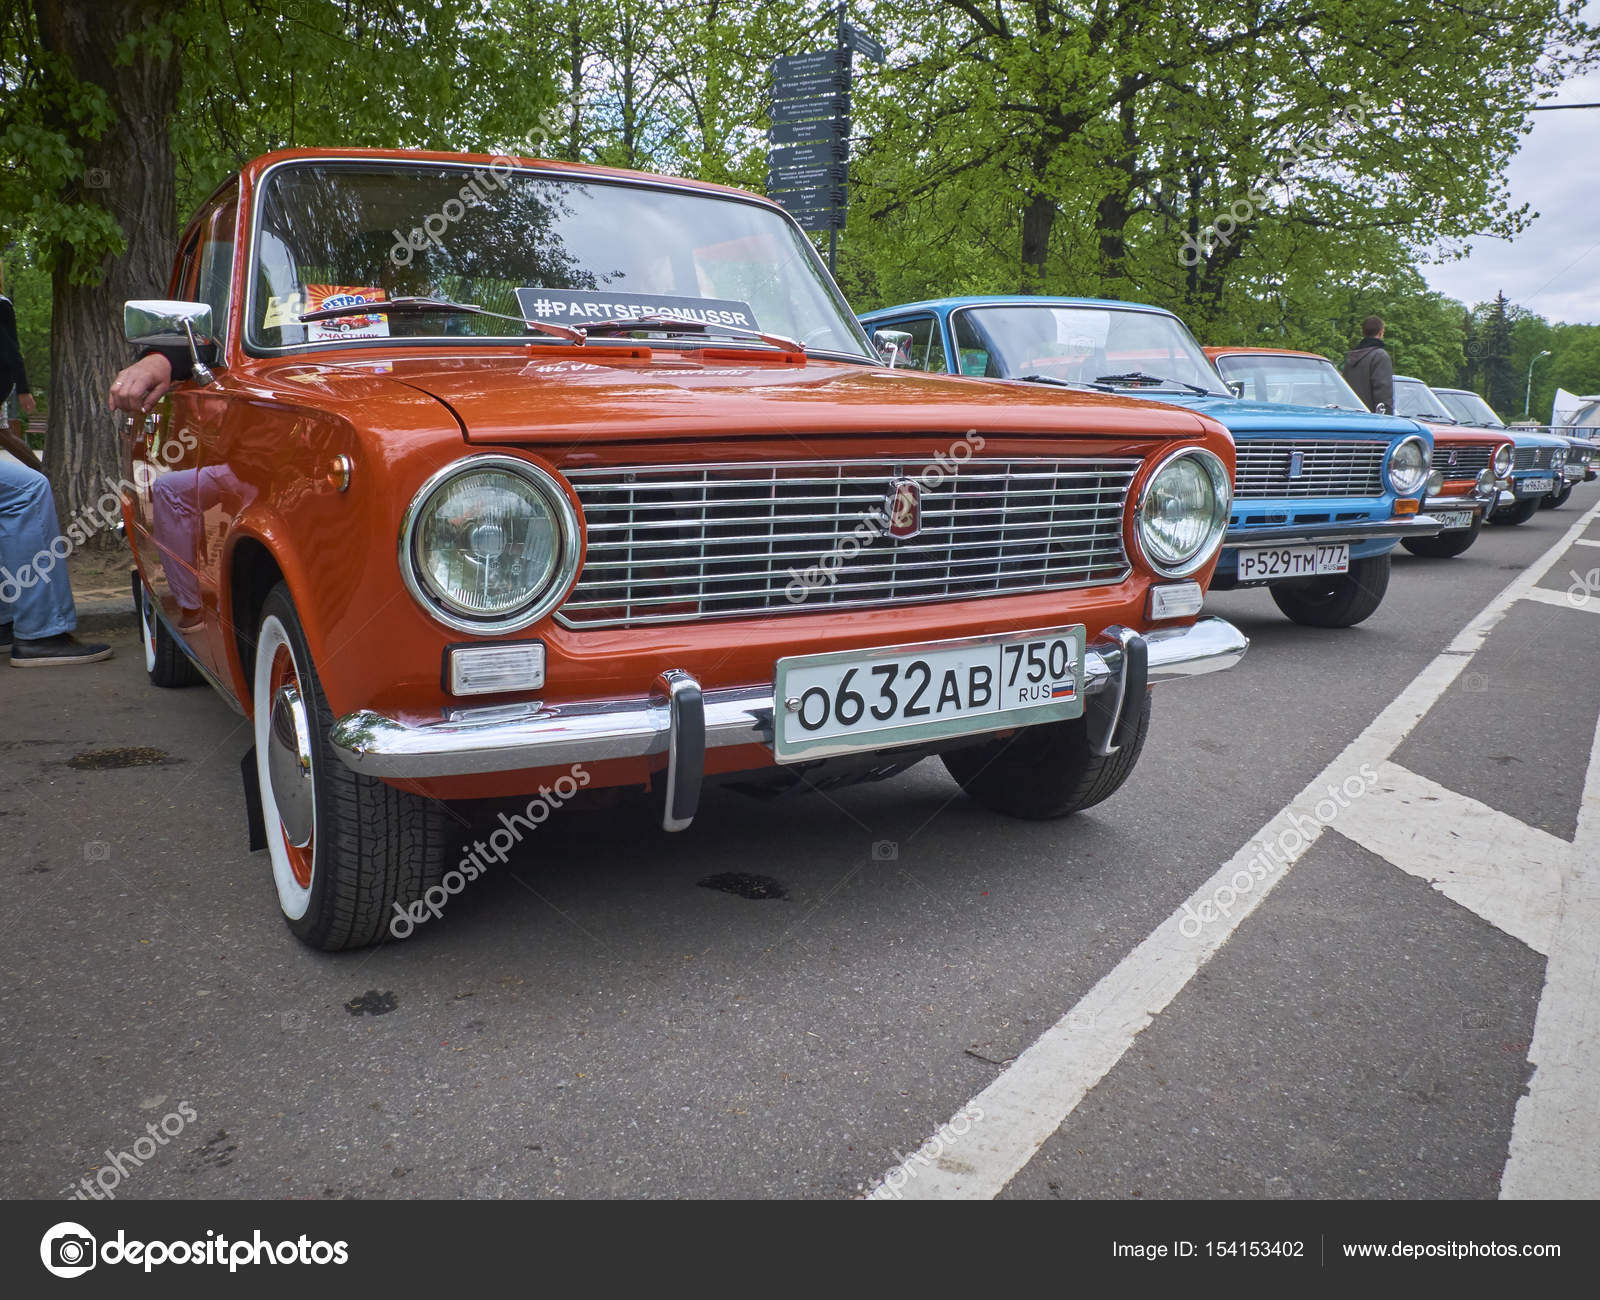 VAZ 21061 is a classic of the Soviet period